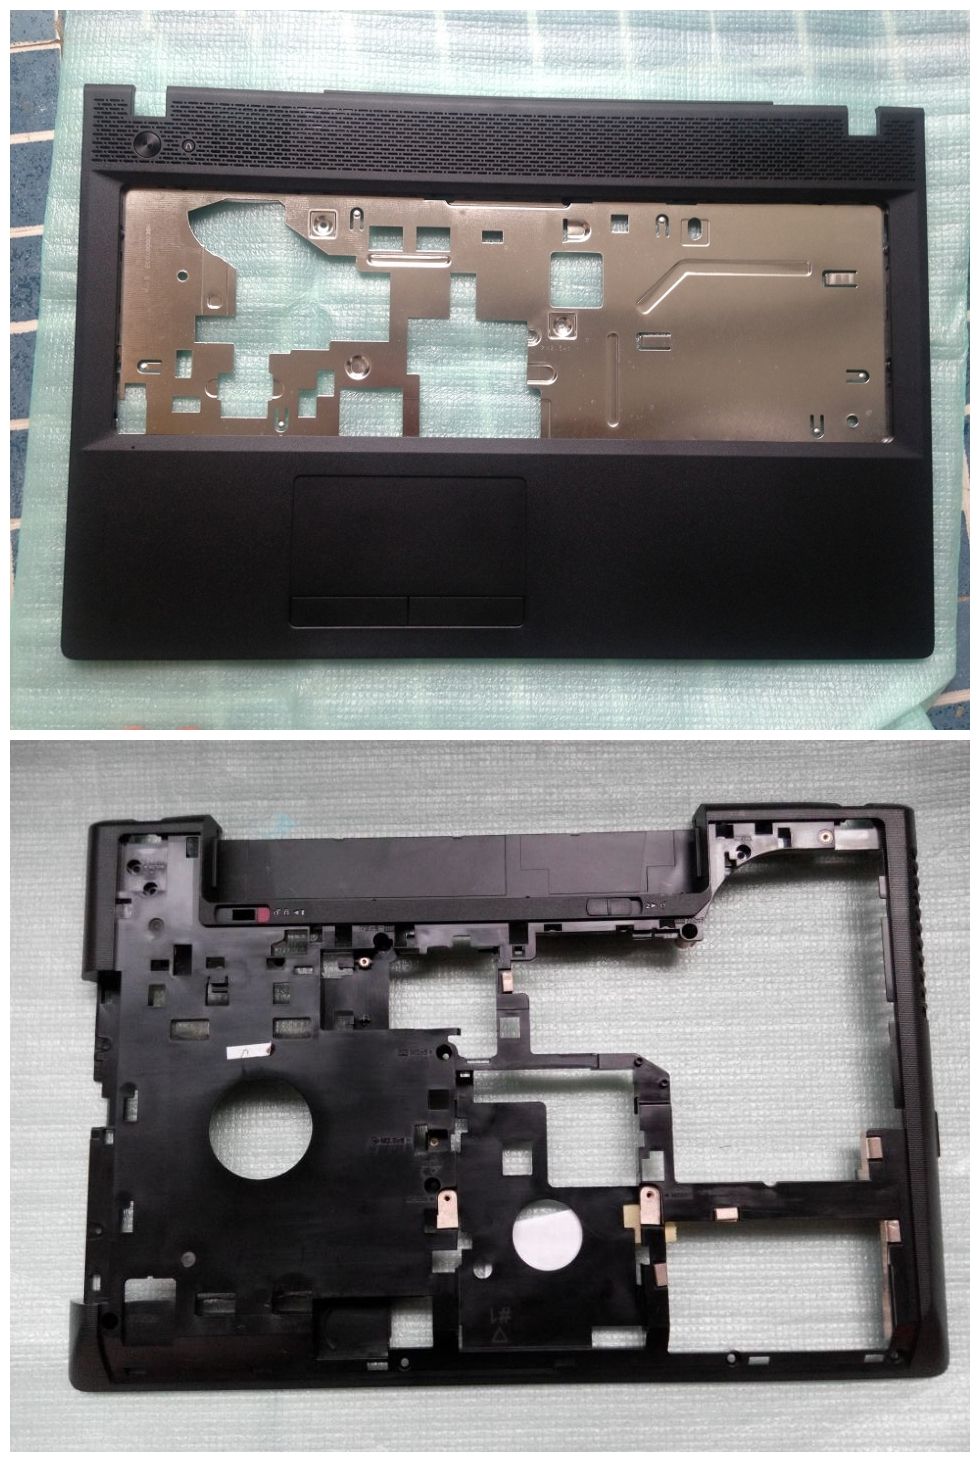 New Original For Lenovo G400 G405 G410 G490 Base Cover Bottom Lower Case Palmrest Upper Case